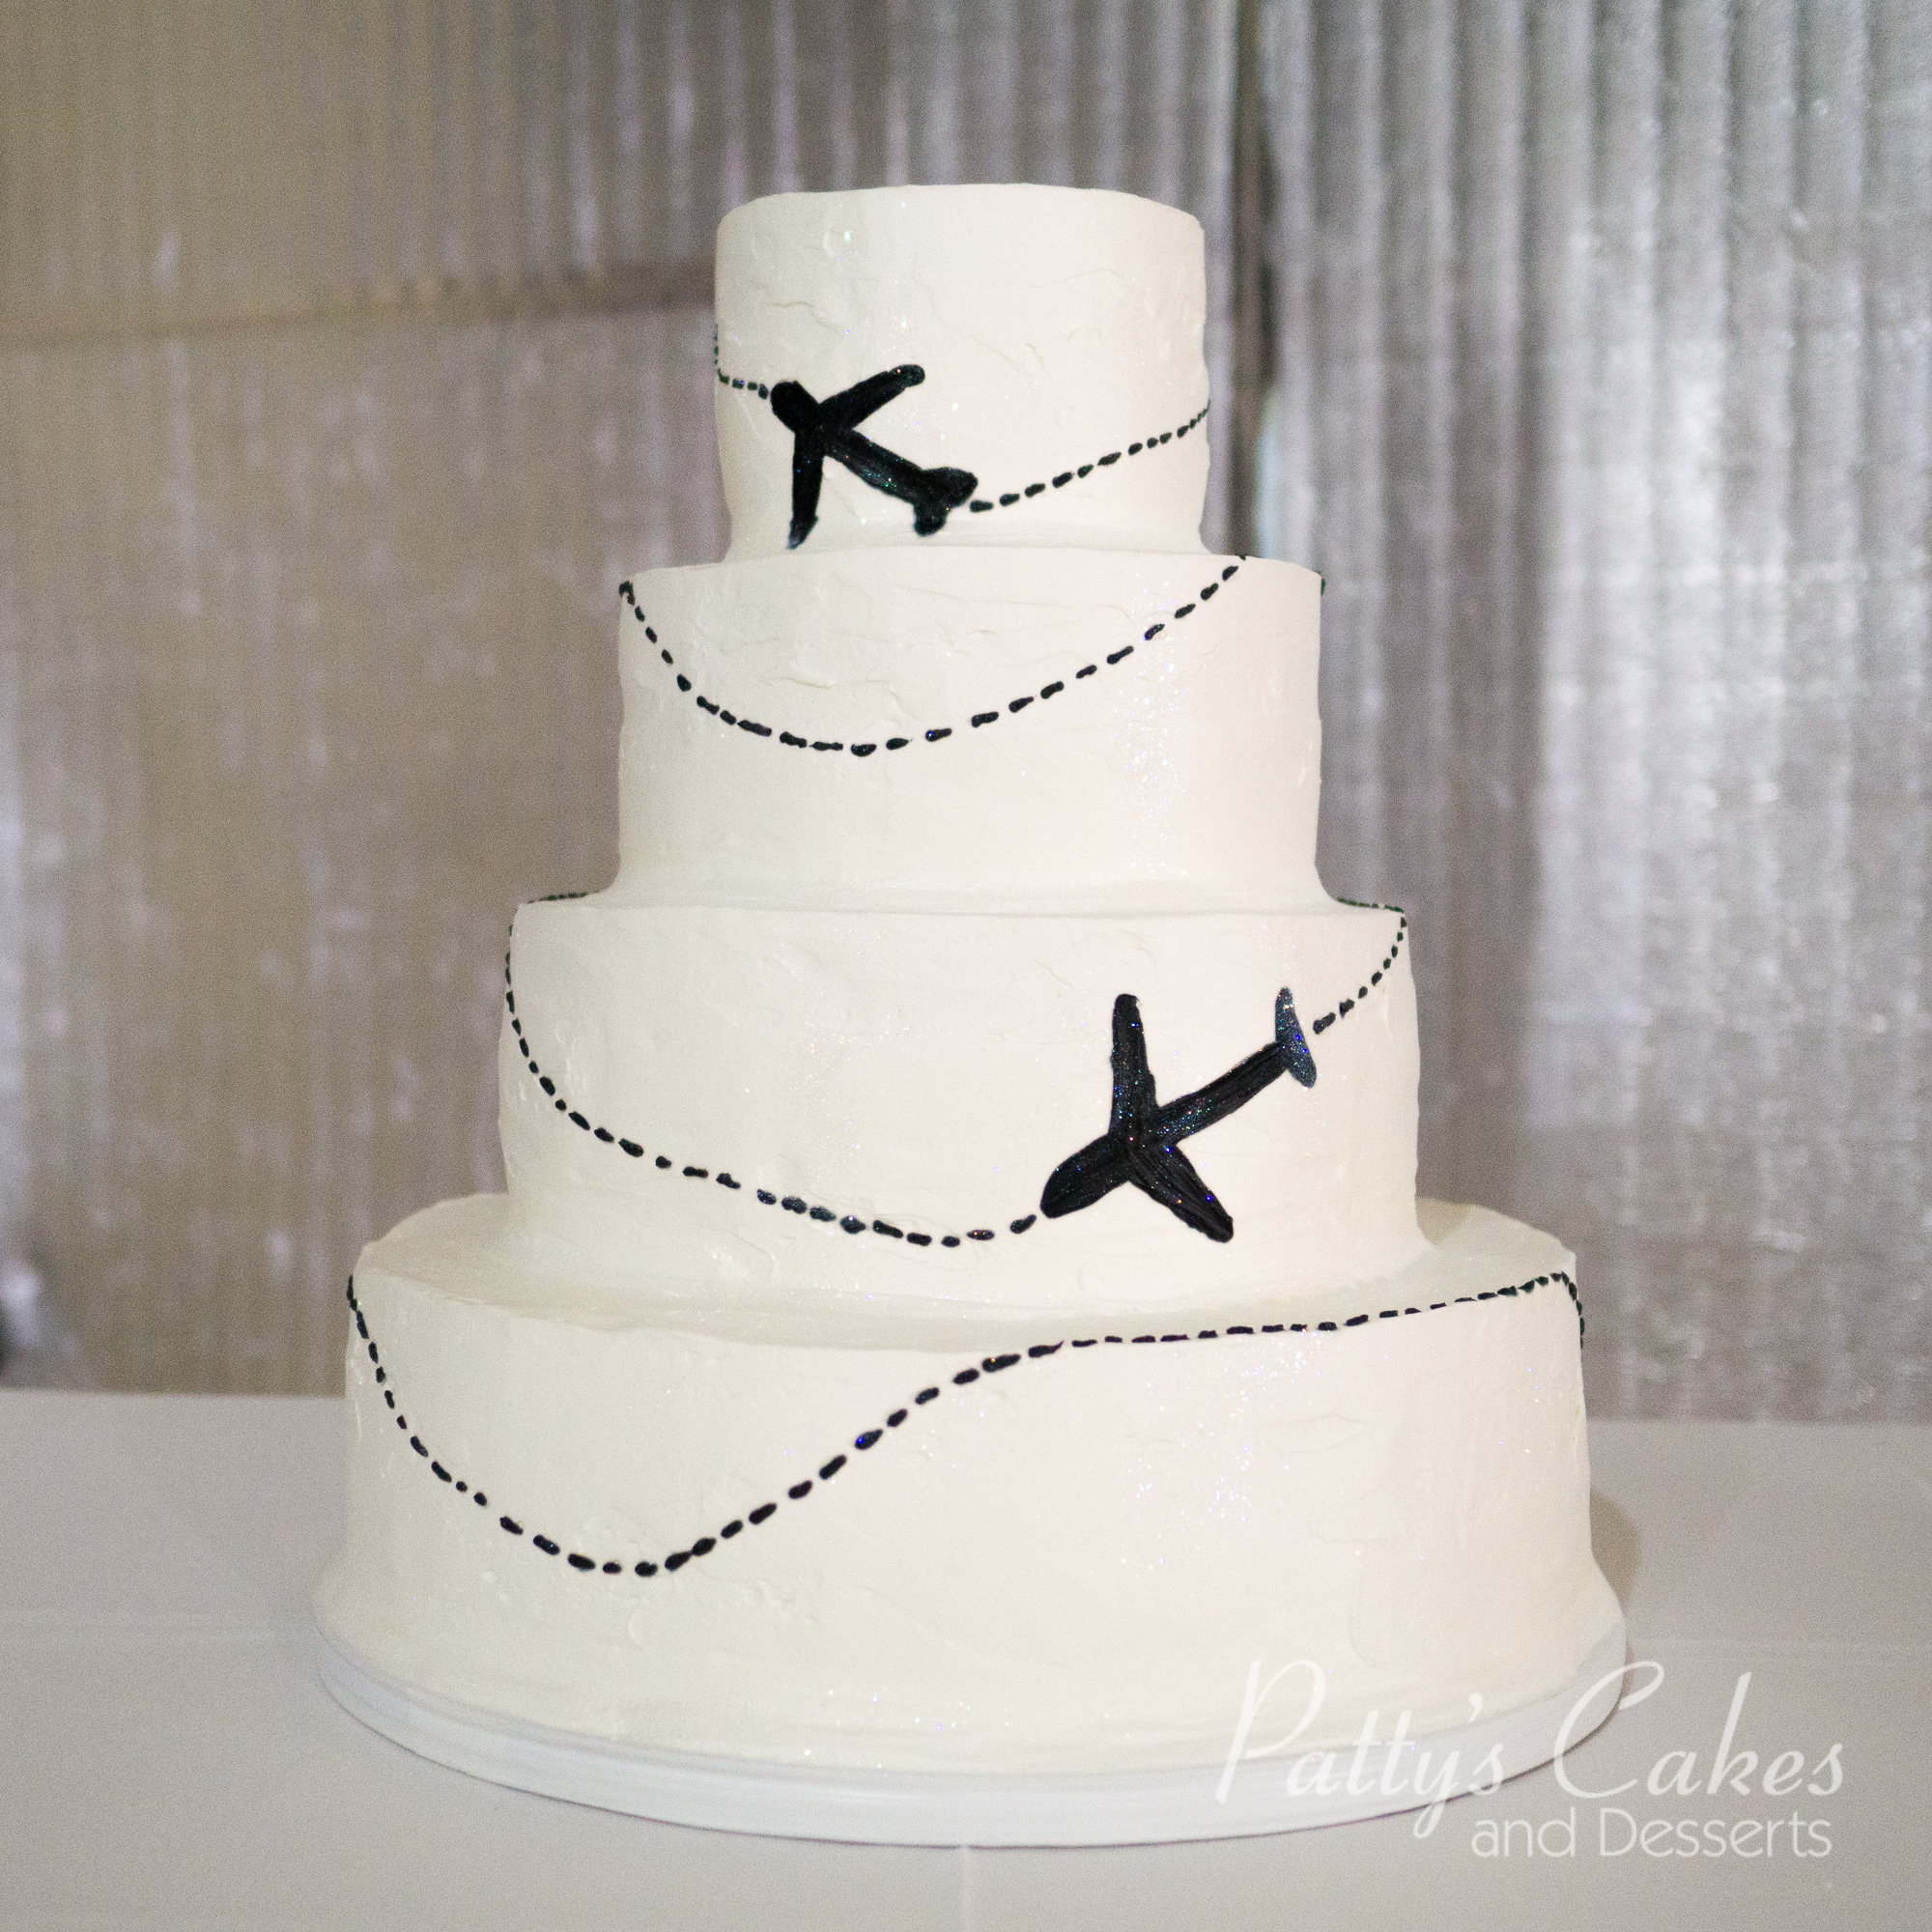 aircraft wedding cake photo of a airplane wedding cake patty s cakes and desserts 10633